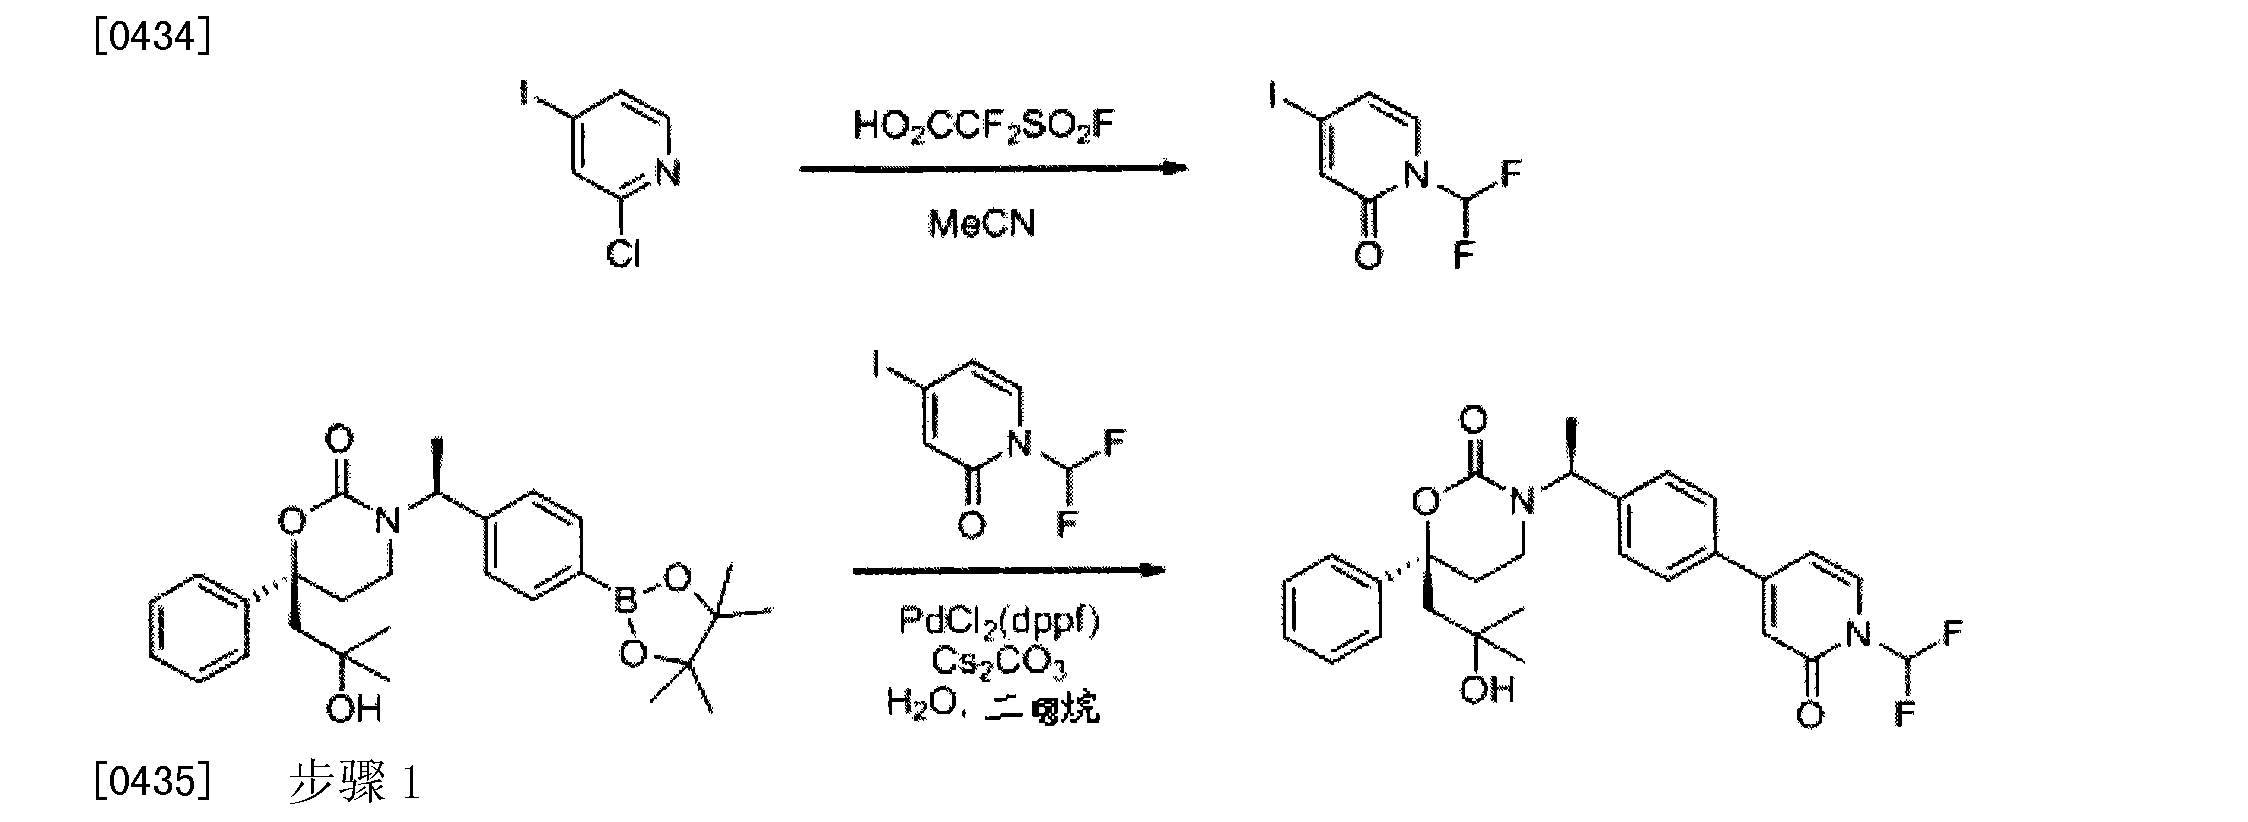 11beta hydroxysteroid